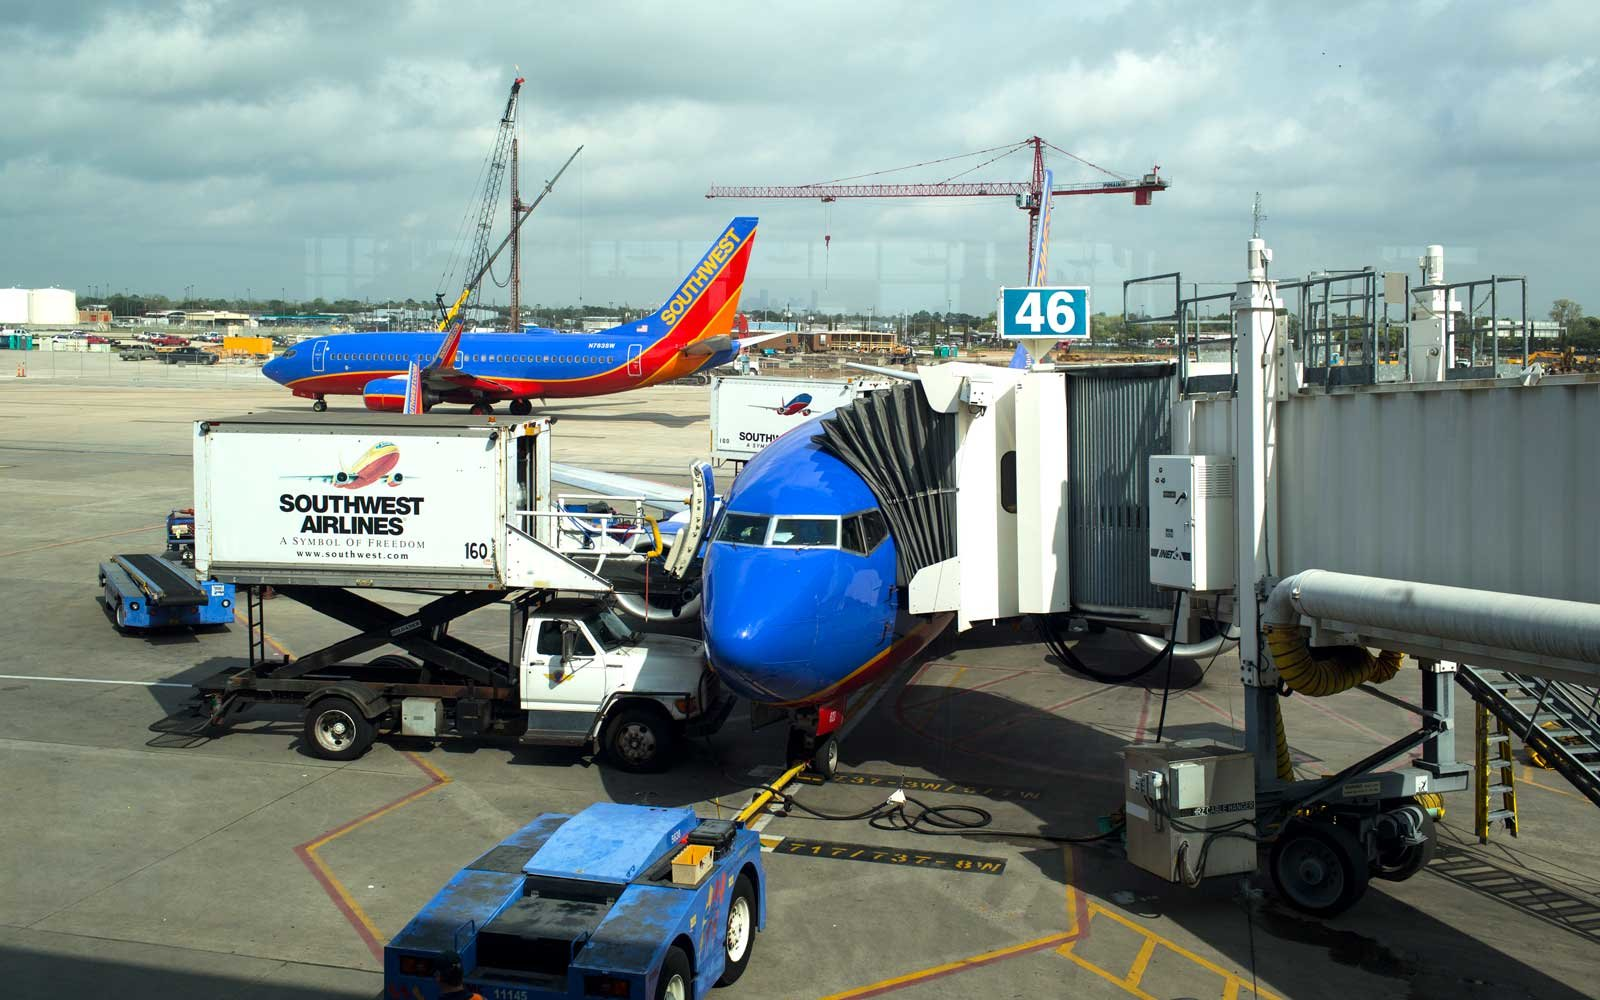 Southwest Airlines In Houston, Texas